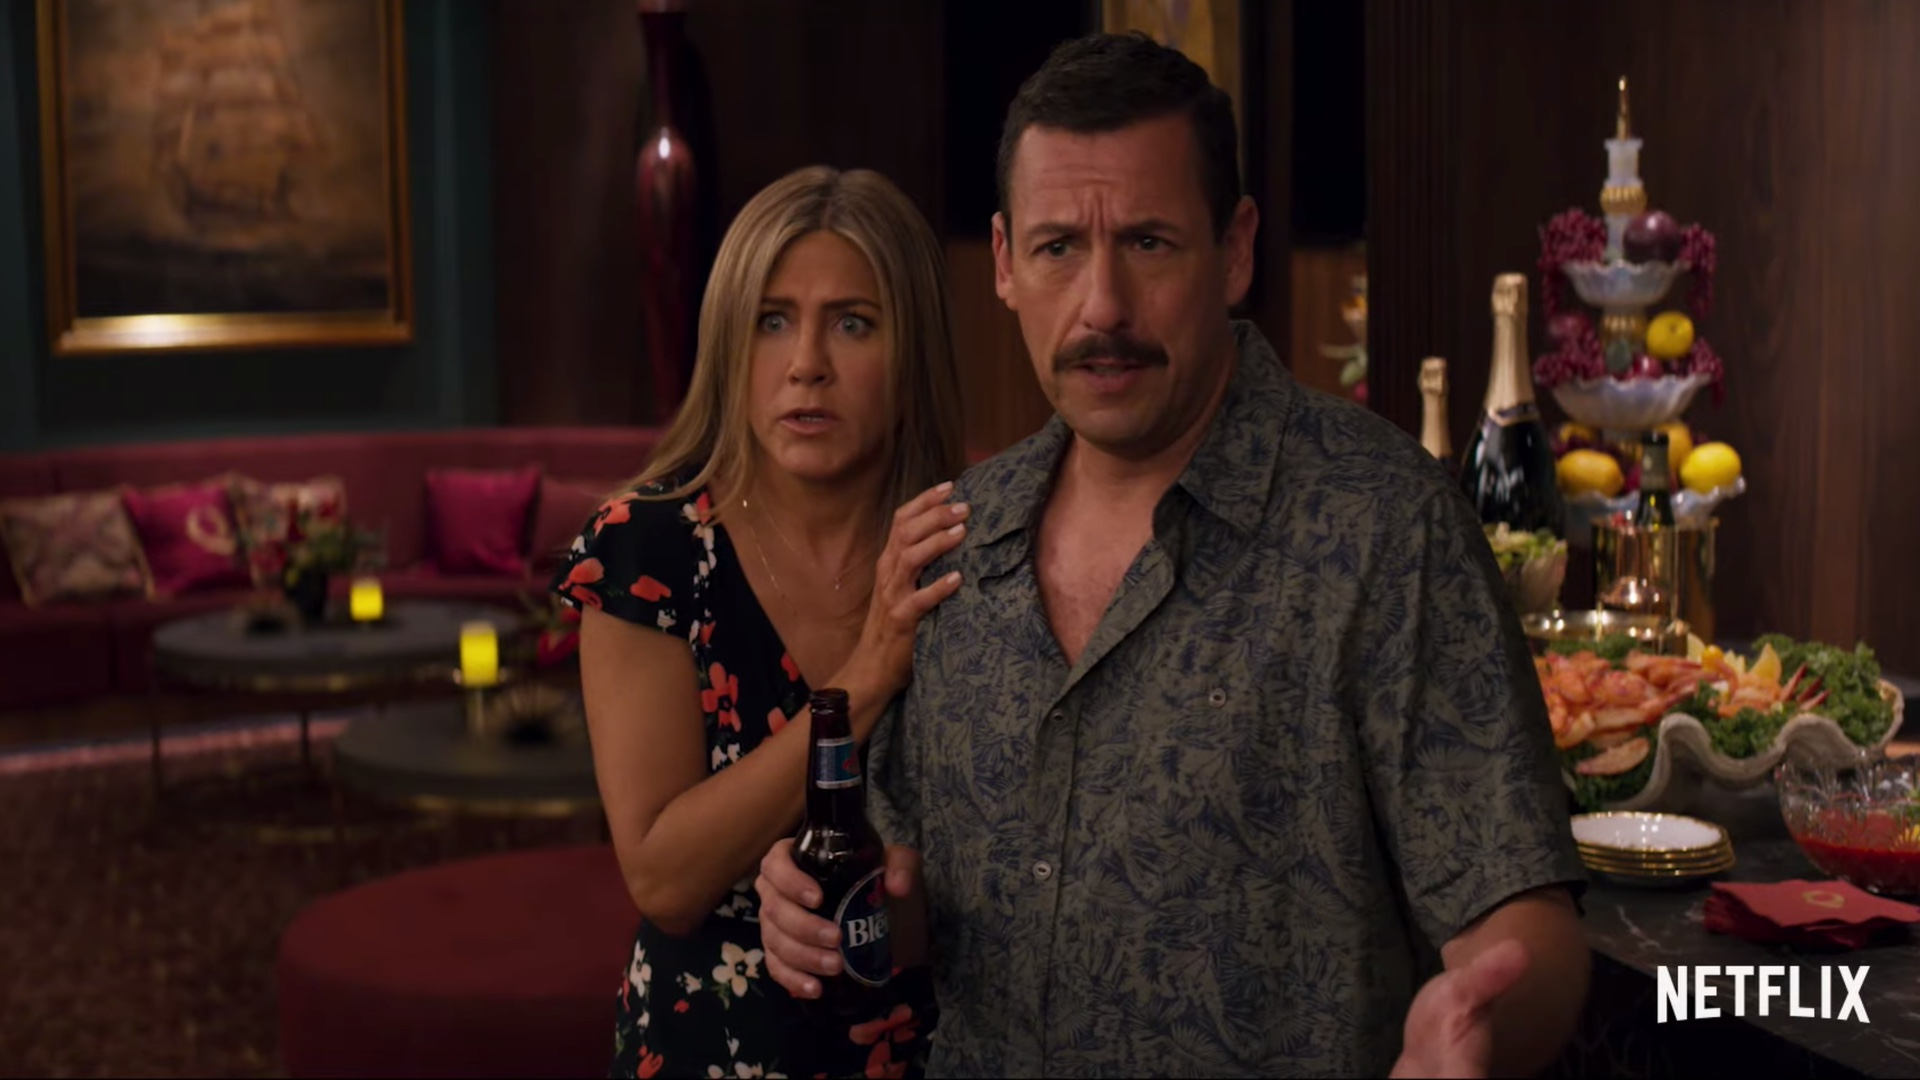 Trailer For Adam Sandler and Jennifer Aniston's New Netflix